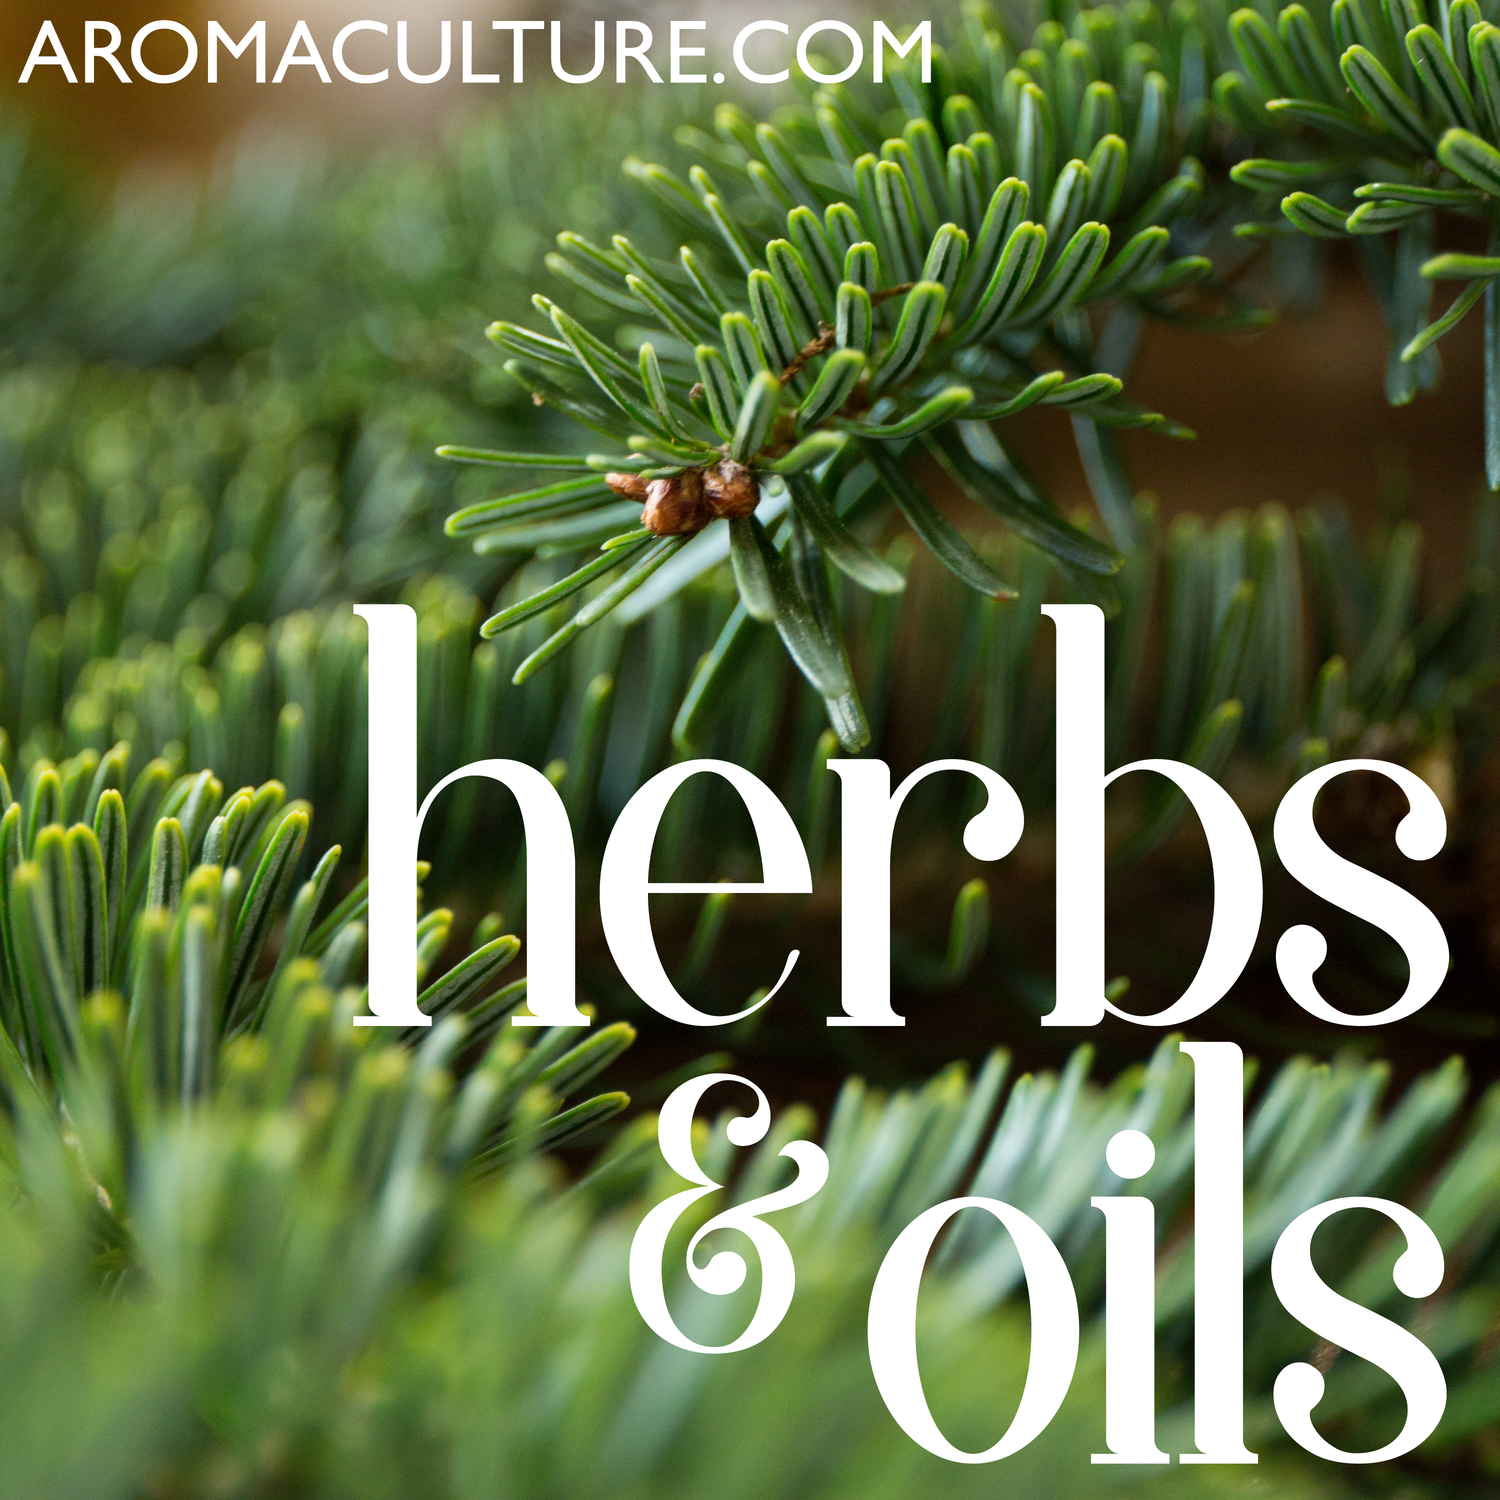 Herbs & Oils Podcast brought to you by AromaCulture com on